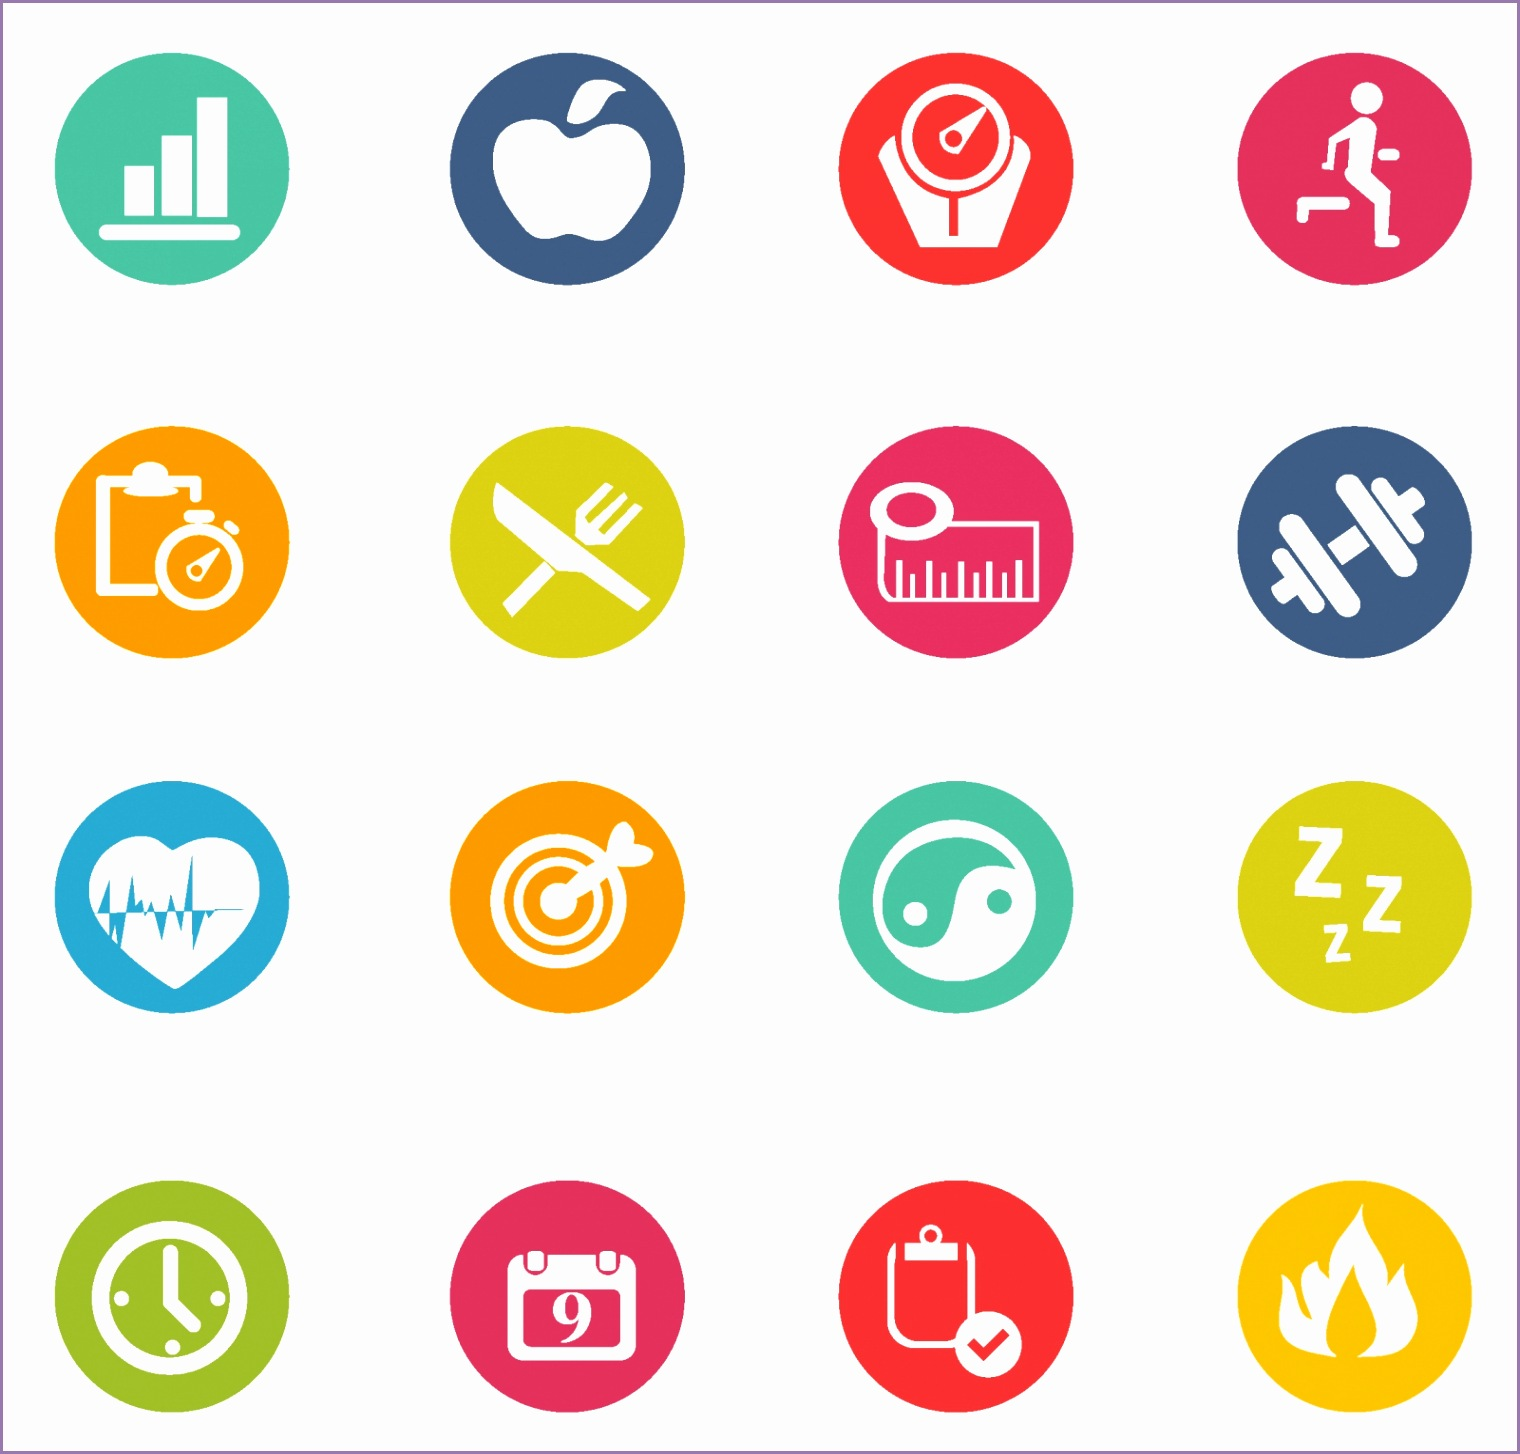 free vector fitness icons Fitness Icons